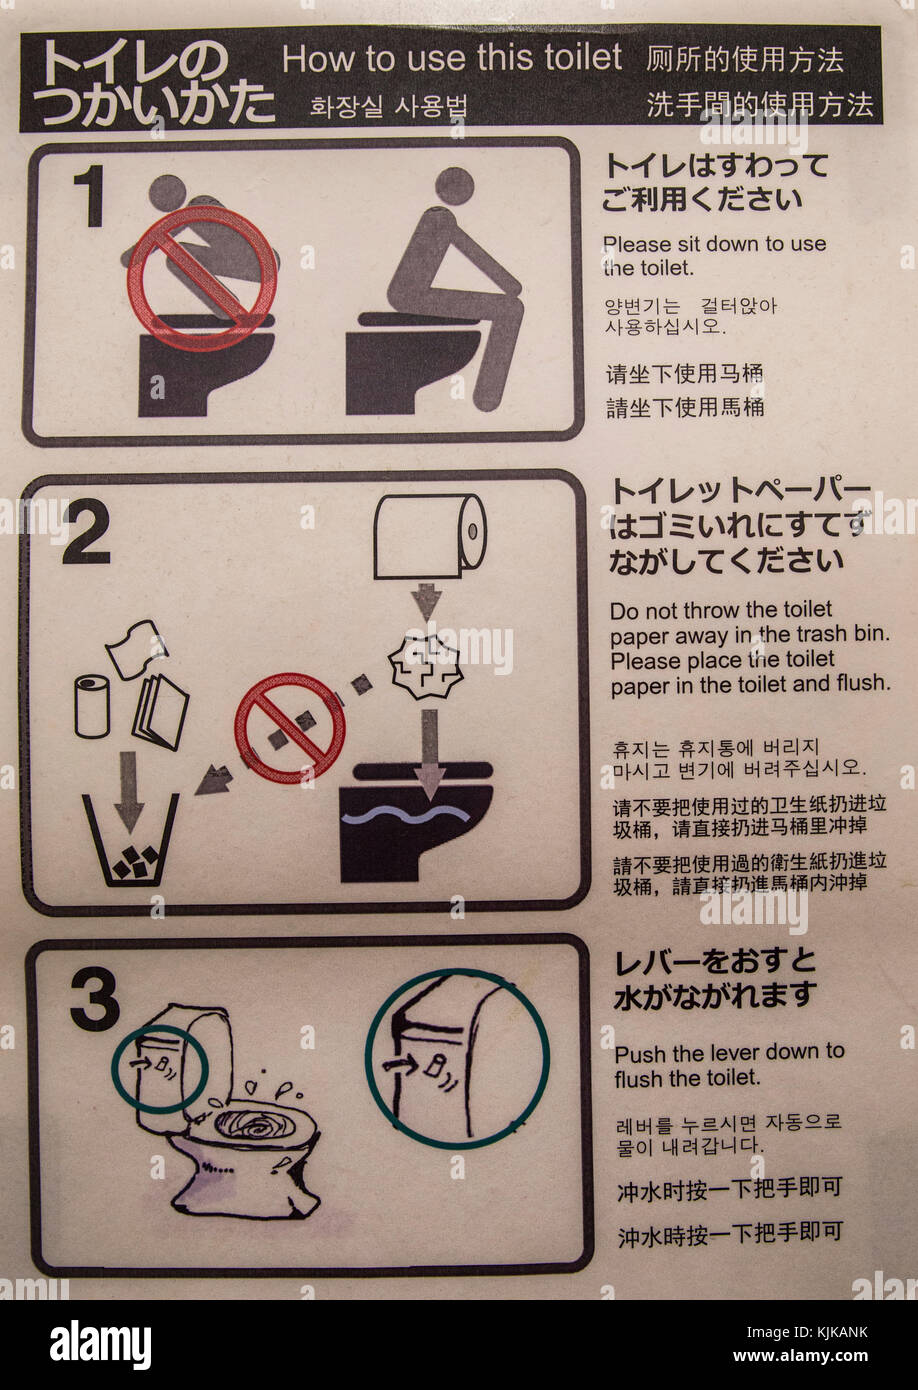 Toilet instructions are given, in several languages.  Japan makes some of the world's most sophisticated toilets. Stock Photo